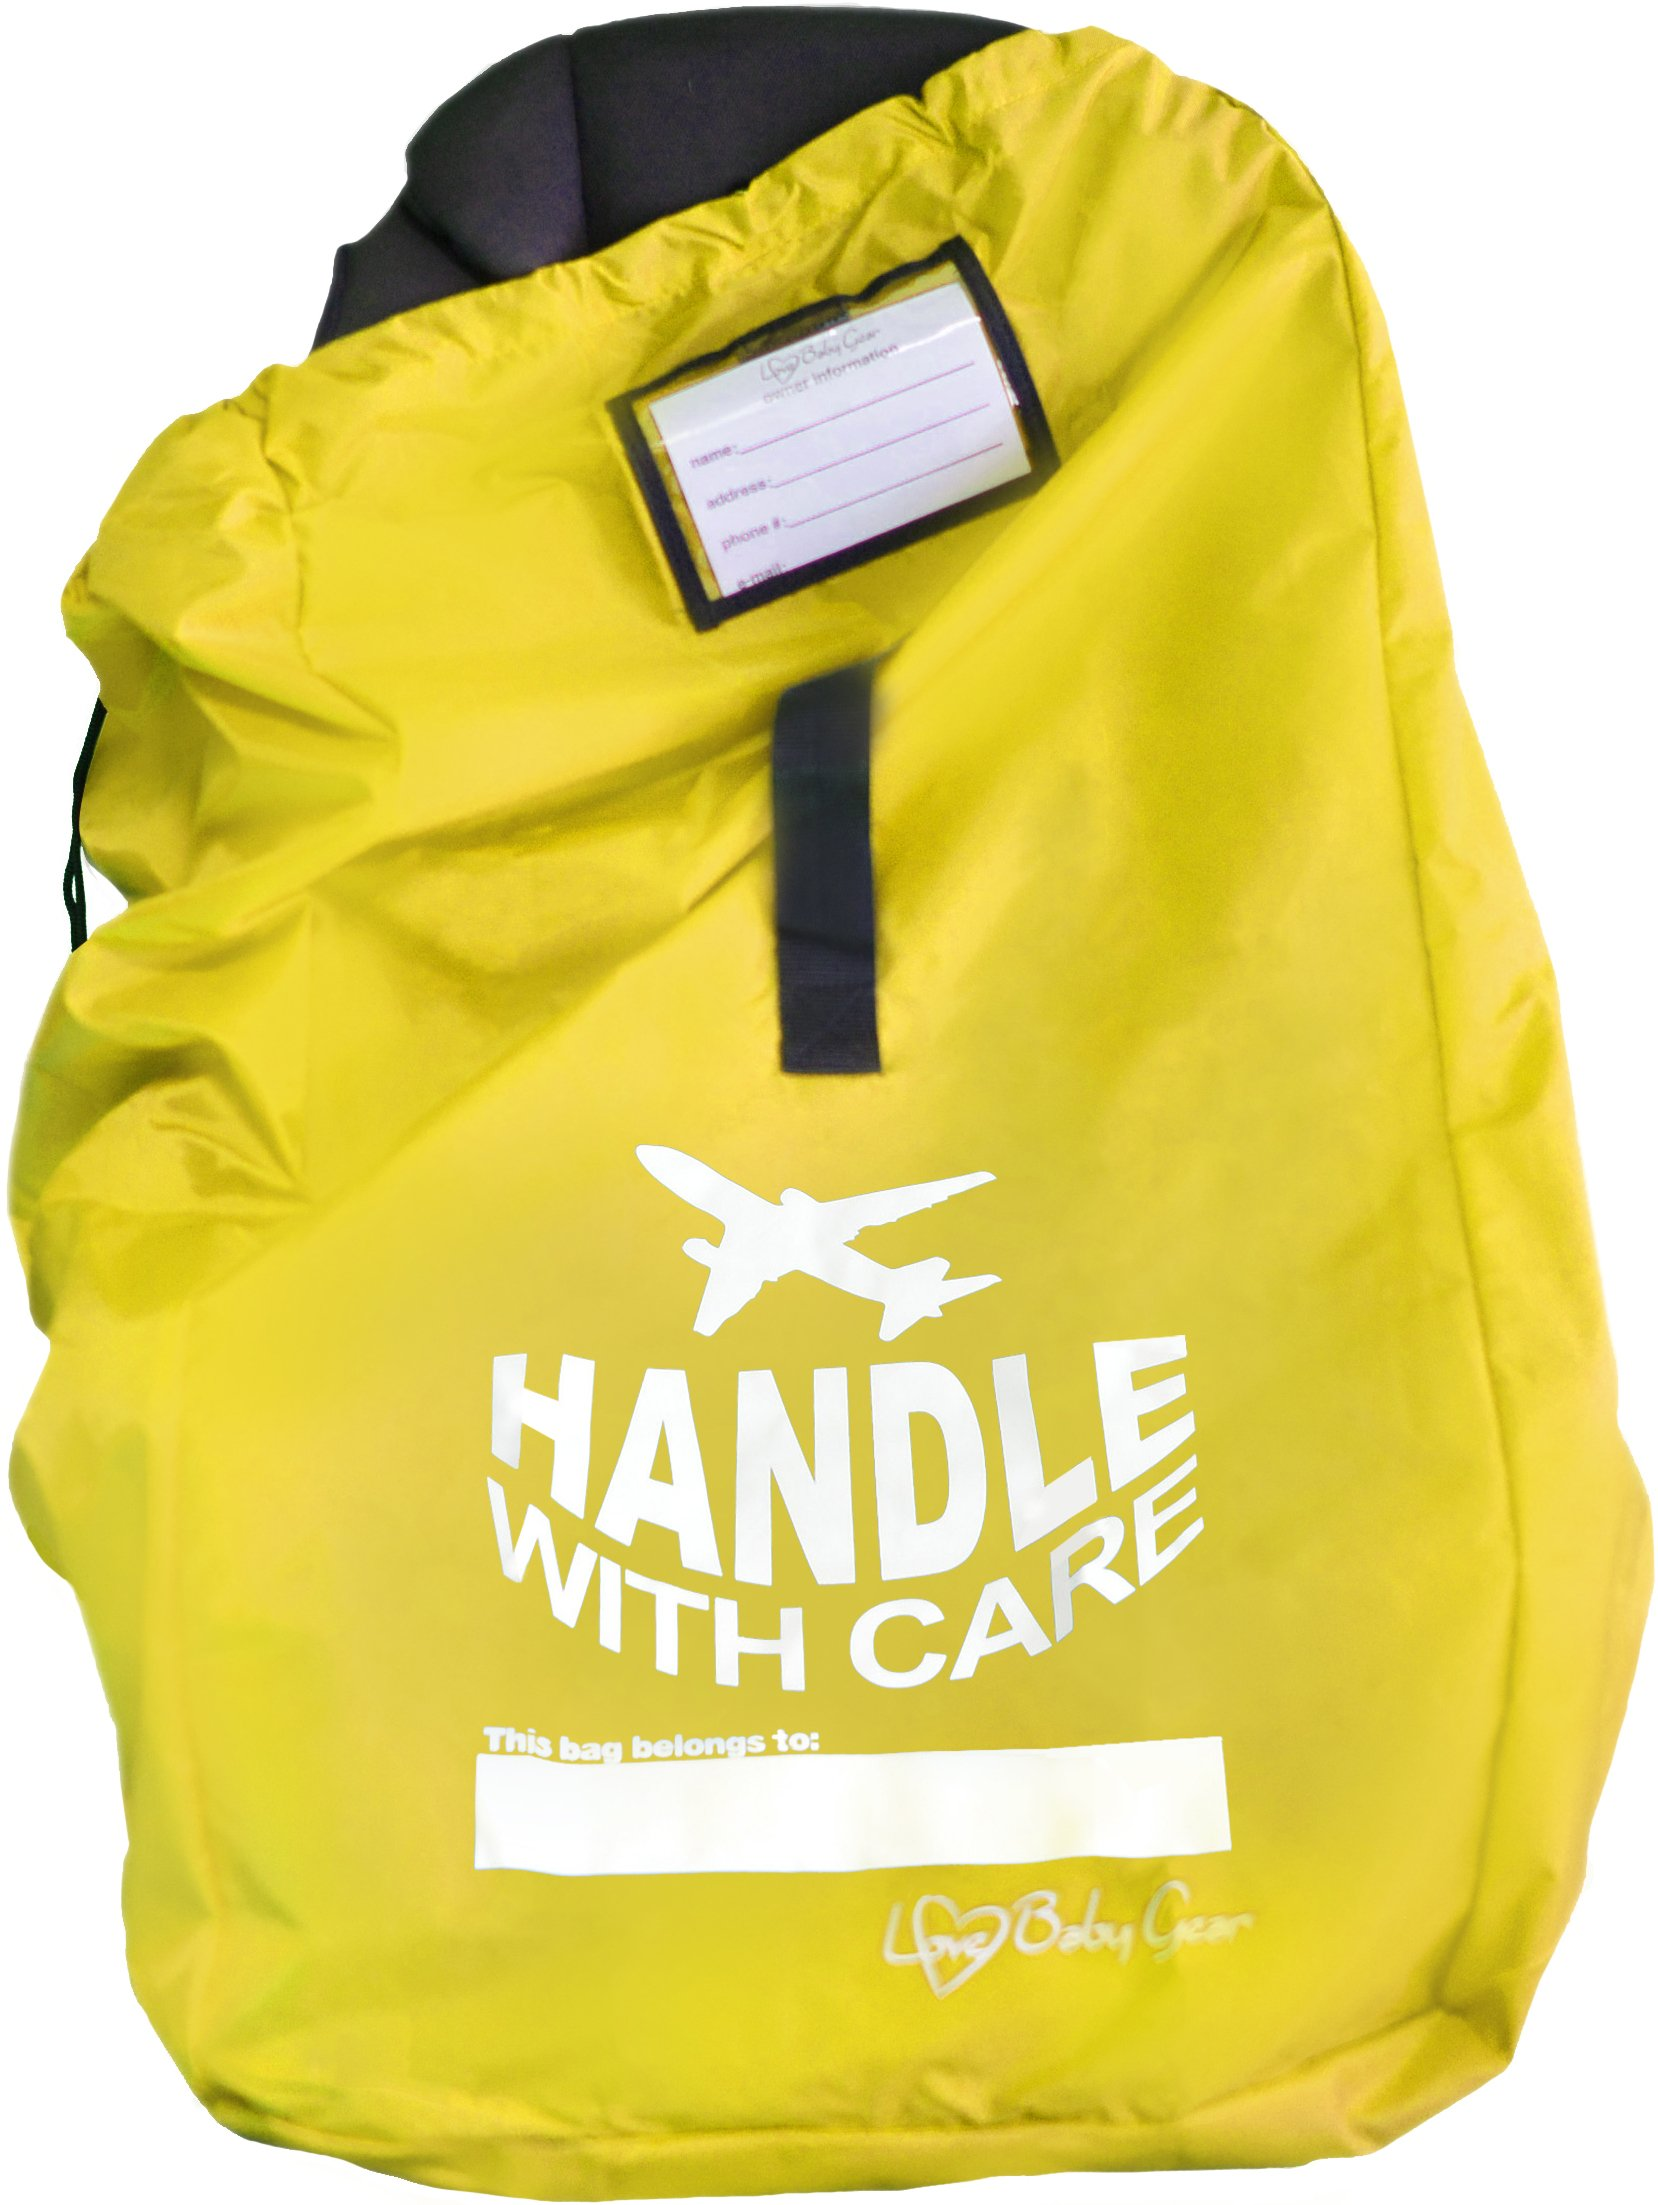 Love Baby Gear Car Seat Gate Check Bag (yellow)